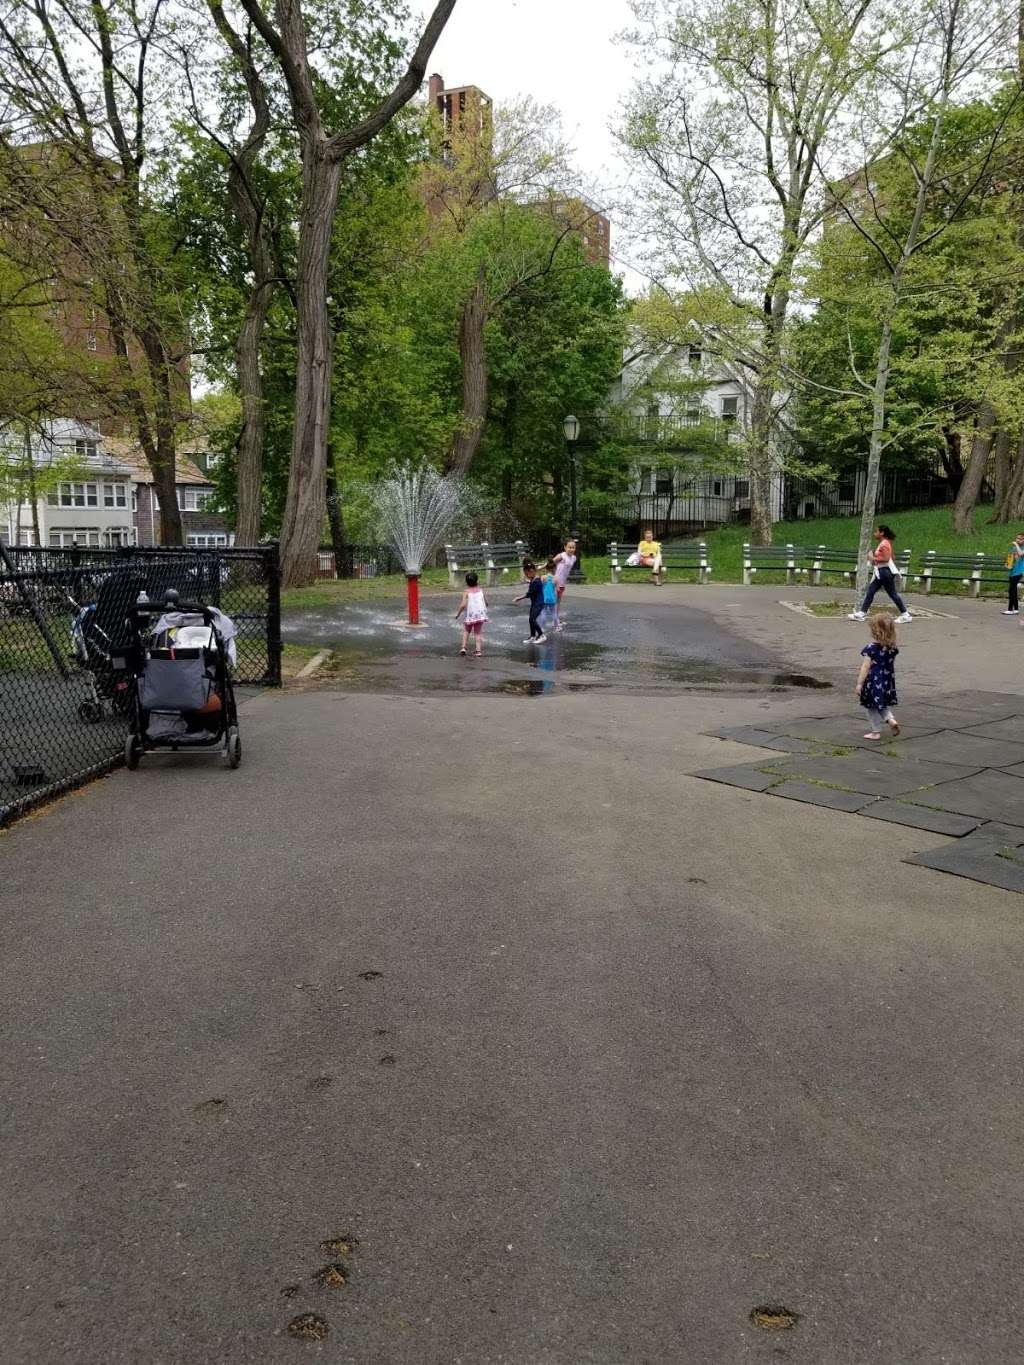 Fort Independence Playground - park  | Photo 1 of 10 | Address: Sedgwick Ave. &, W 238th St, The Bronx, NY 10463, USA | Phone: (212) 639-9675